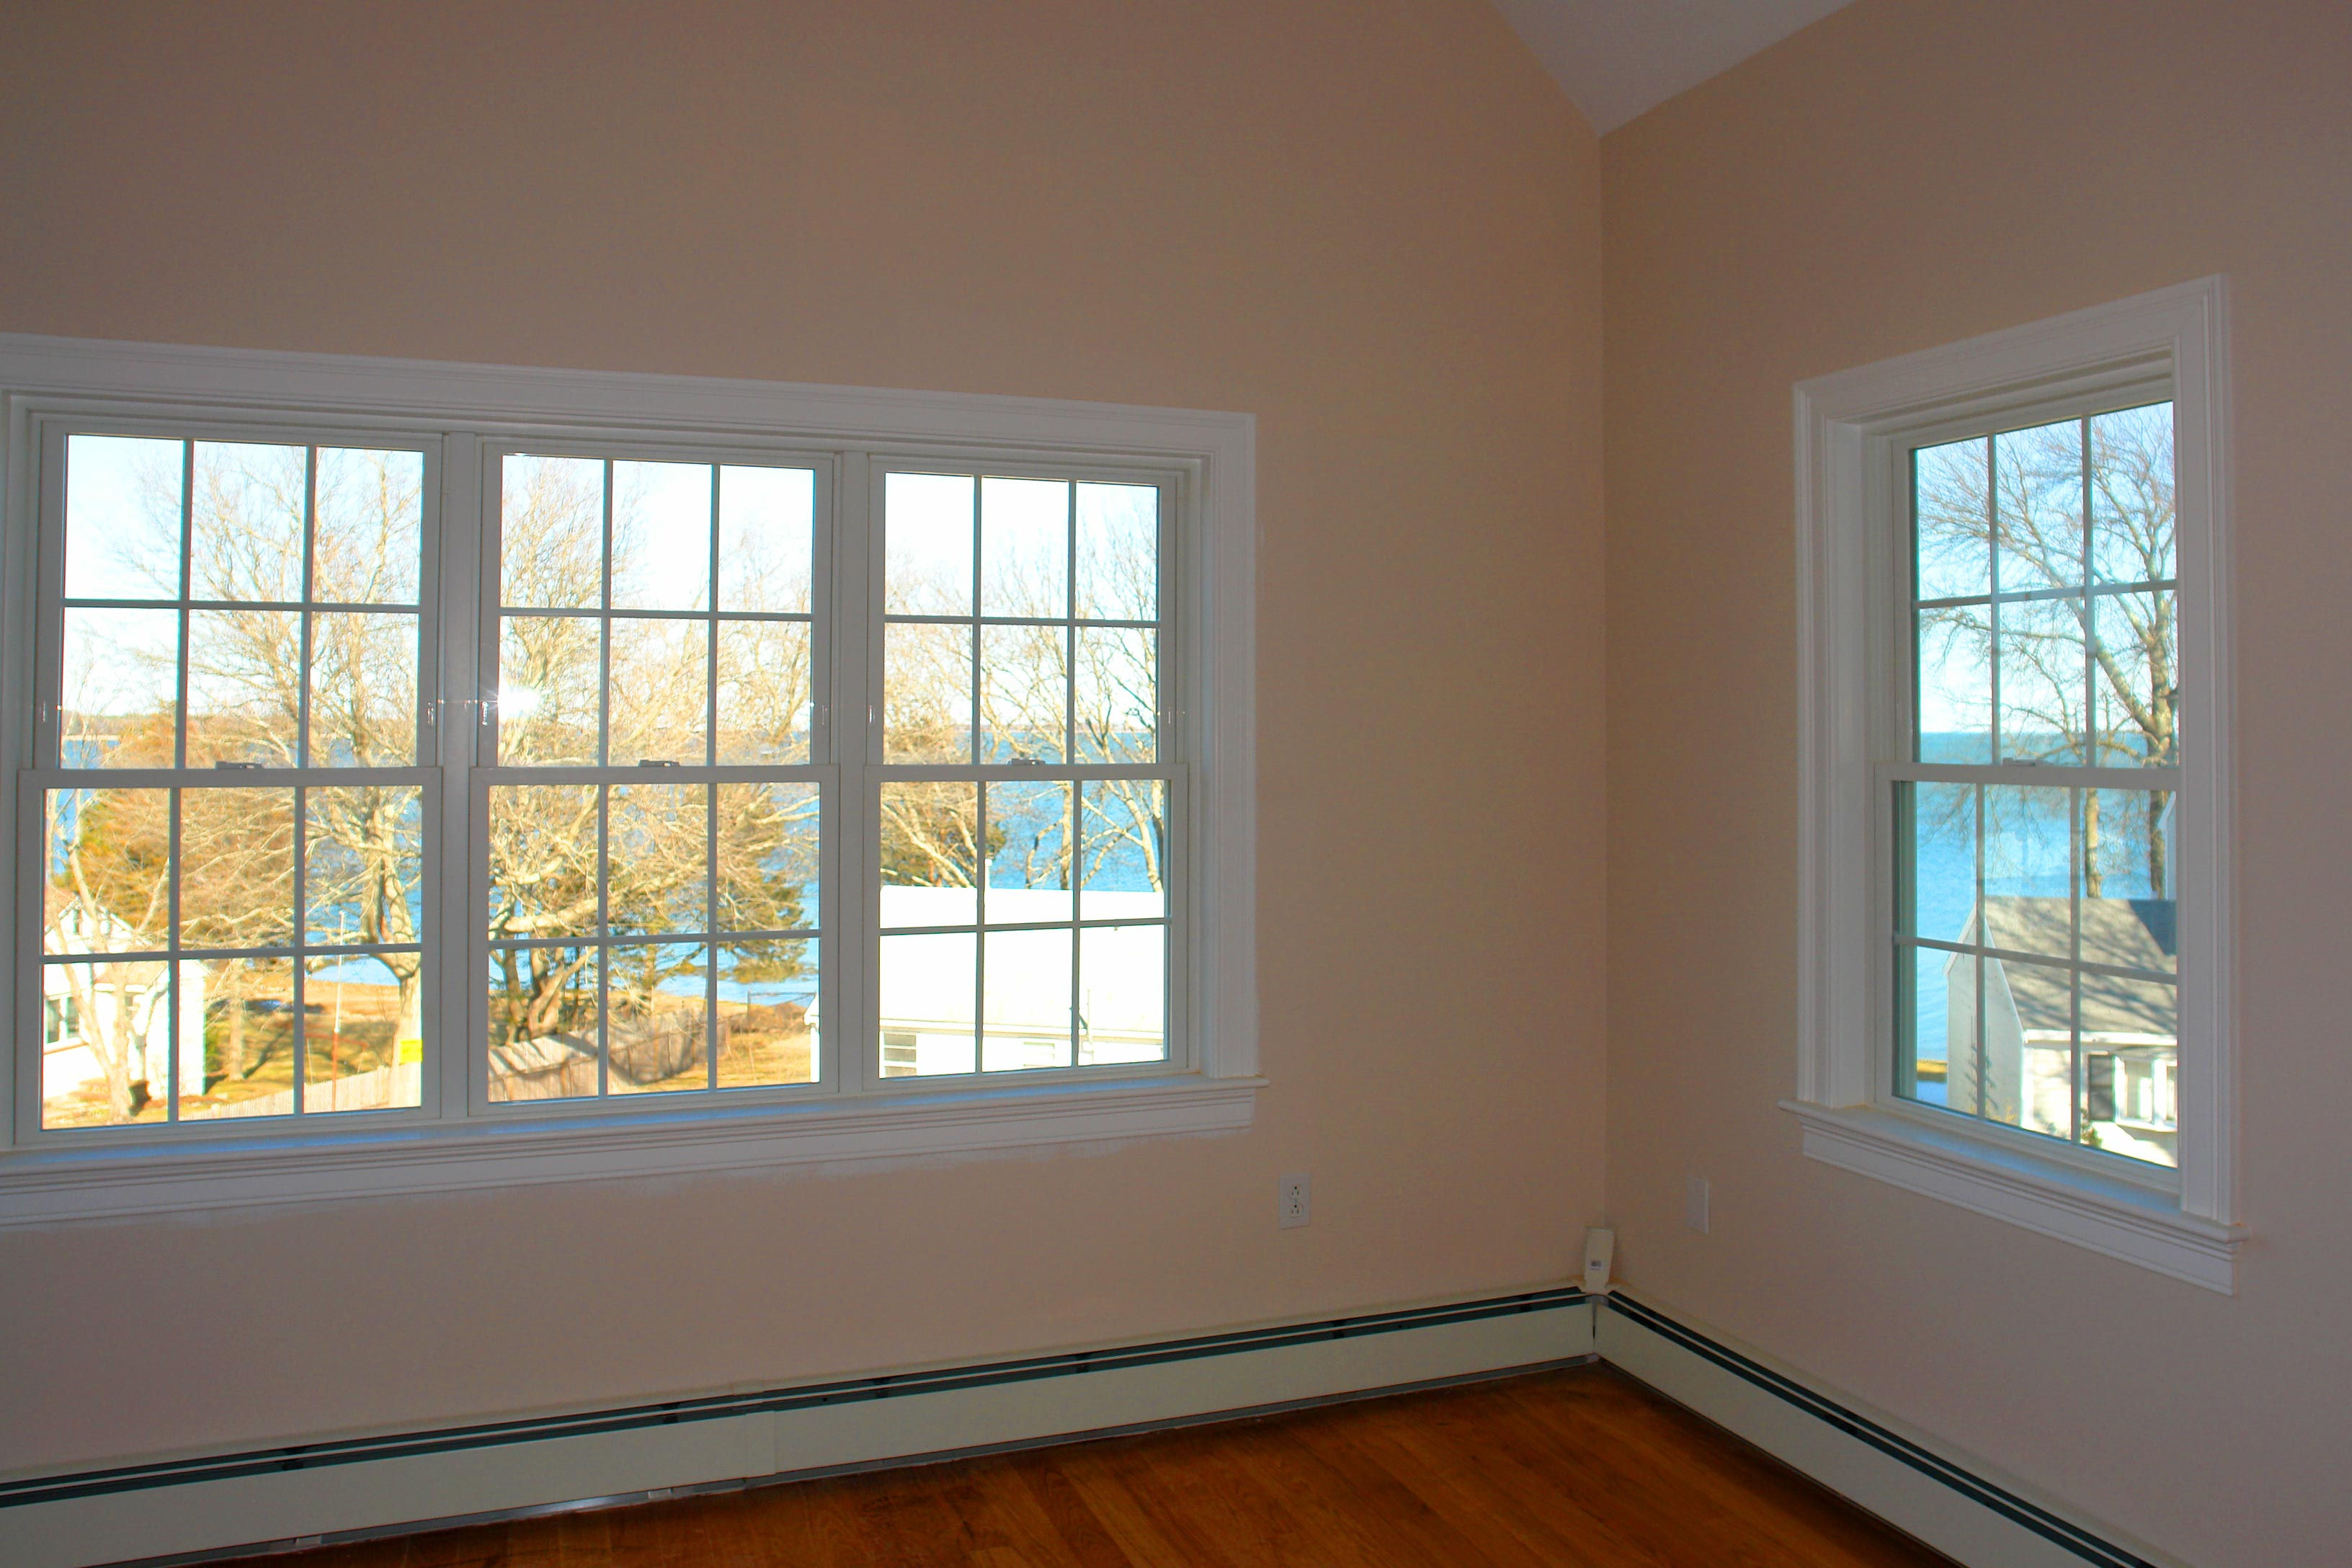 How much are new windows for a house image gallery home for New home windows